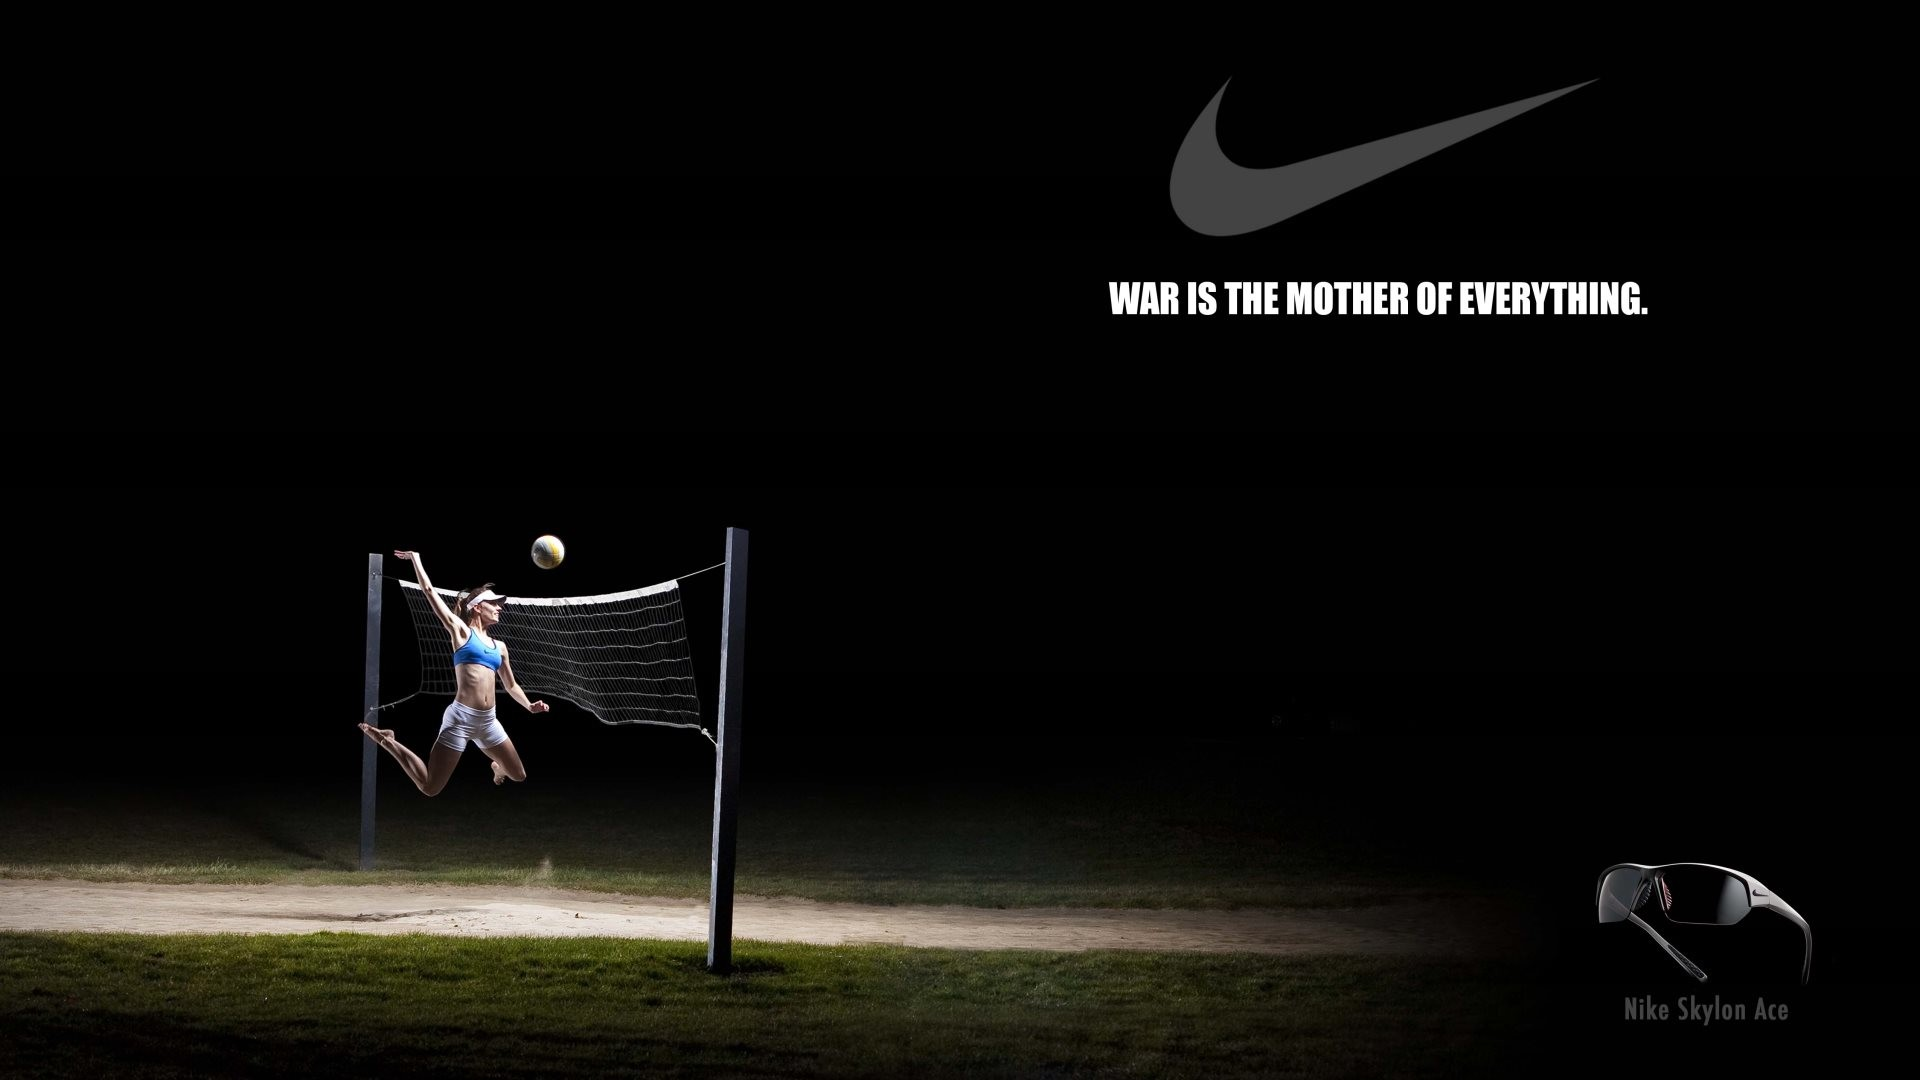 Volleyball wallpapers and backgrounds 59 images - Fantasy nike wallpaper ...